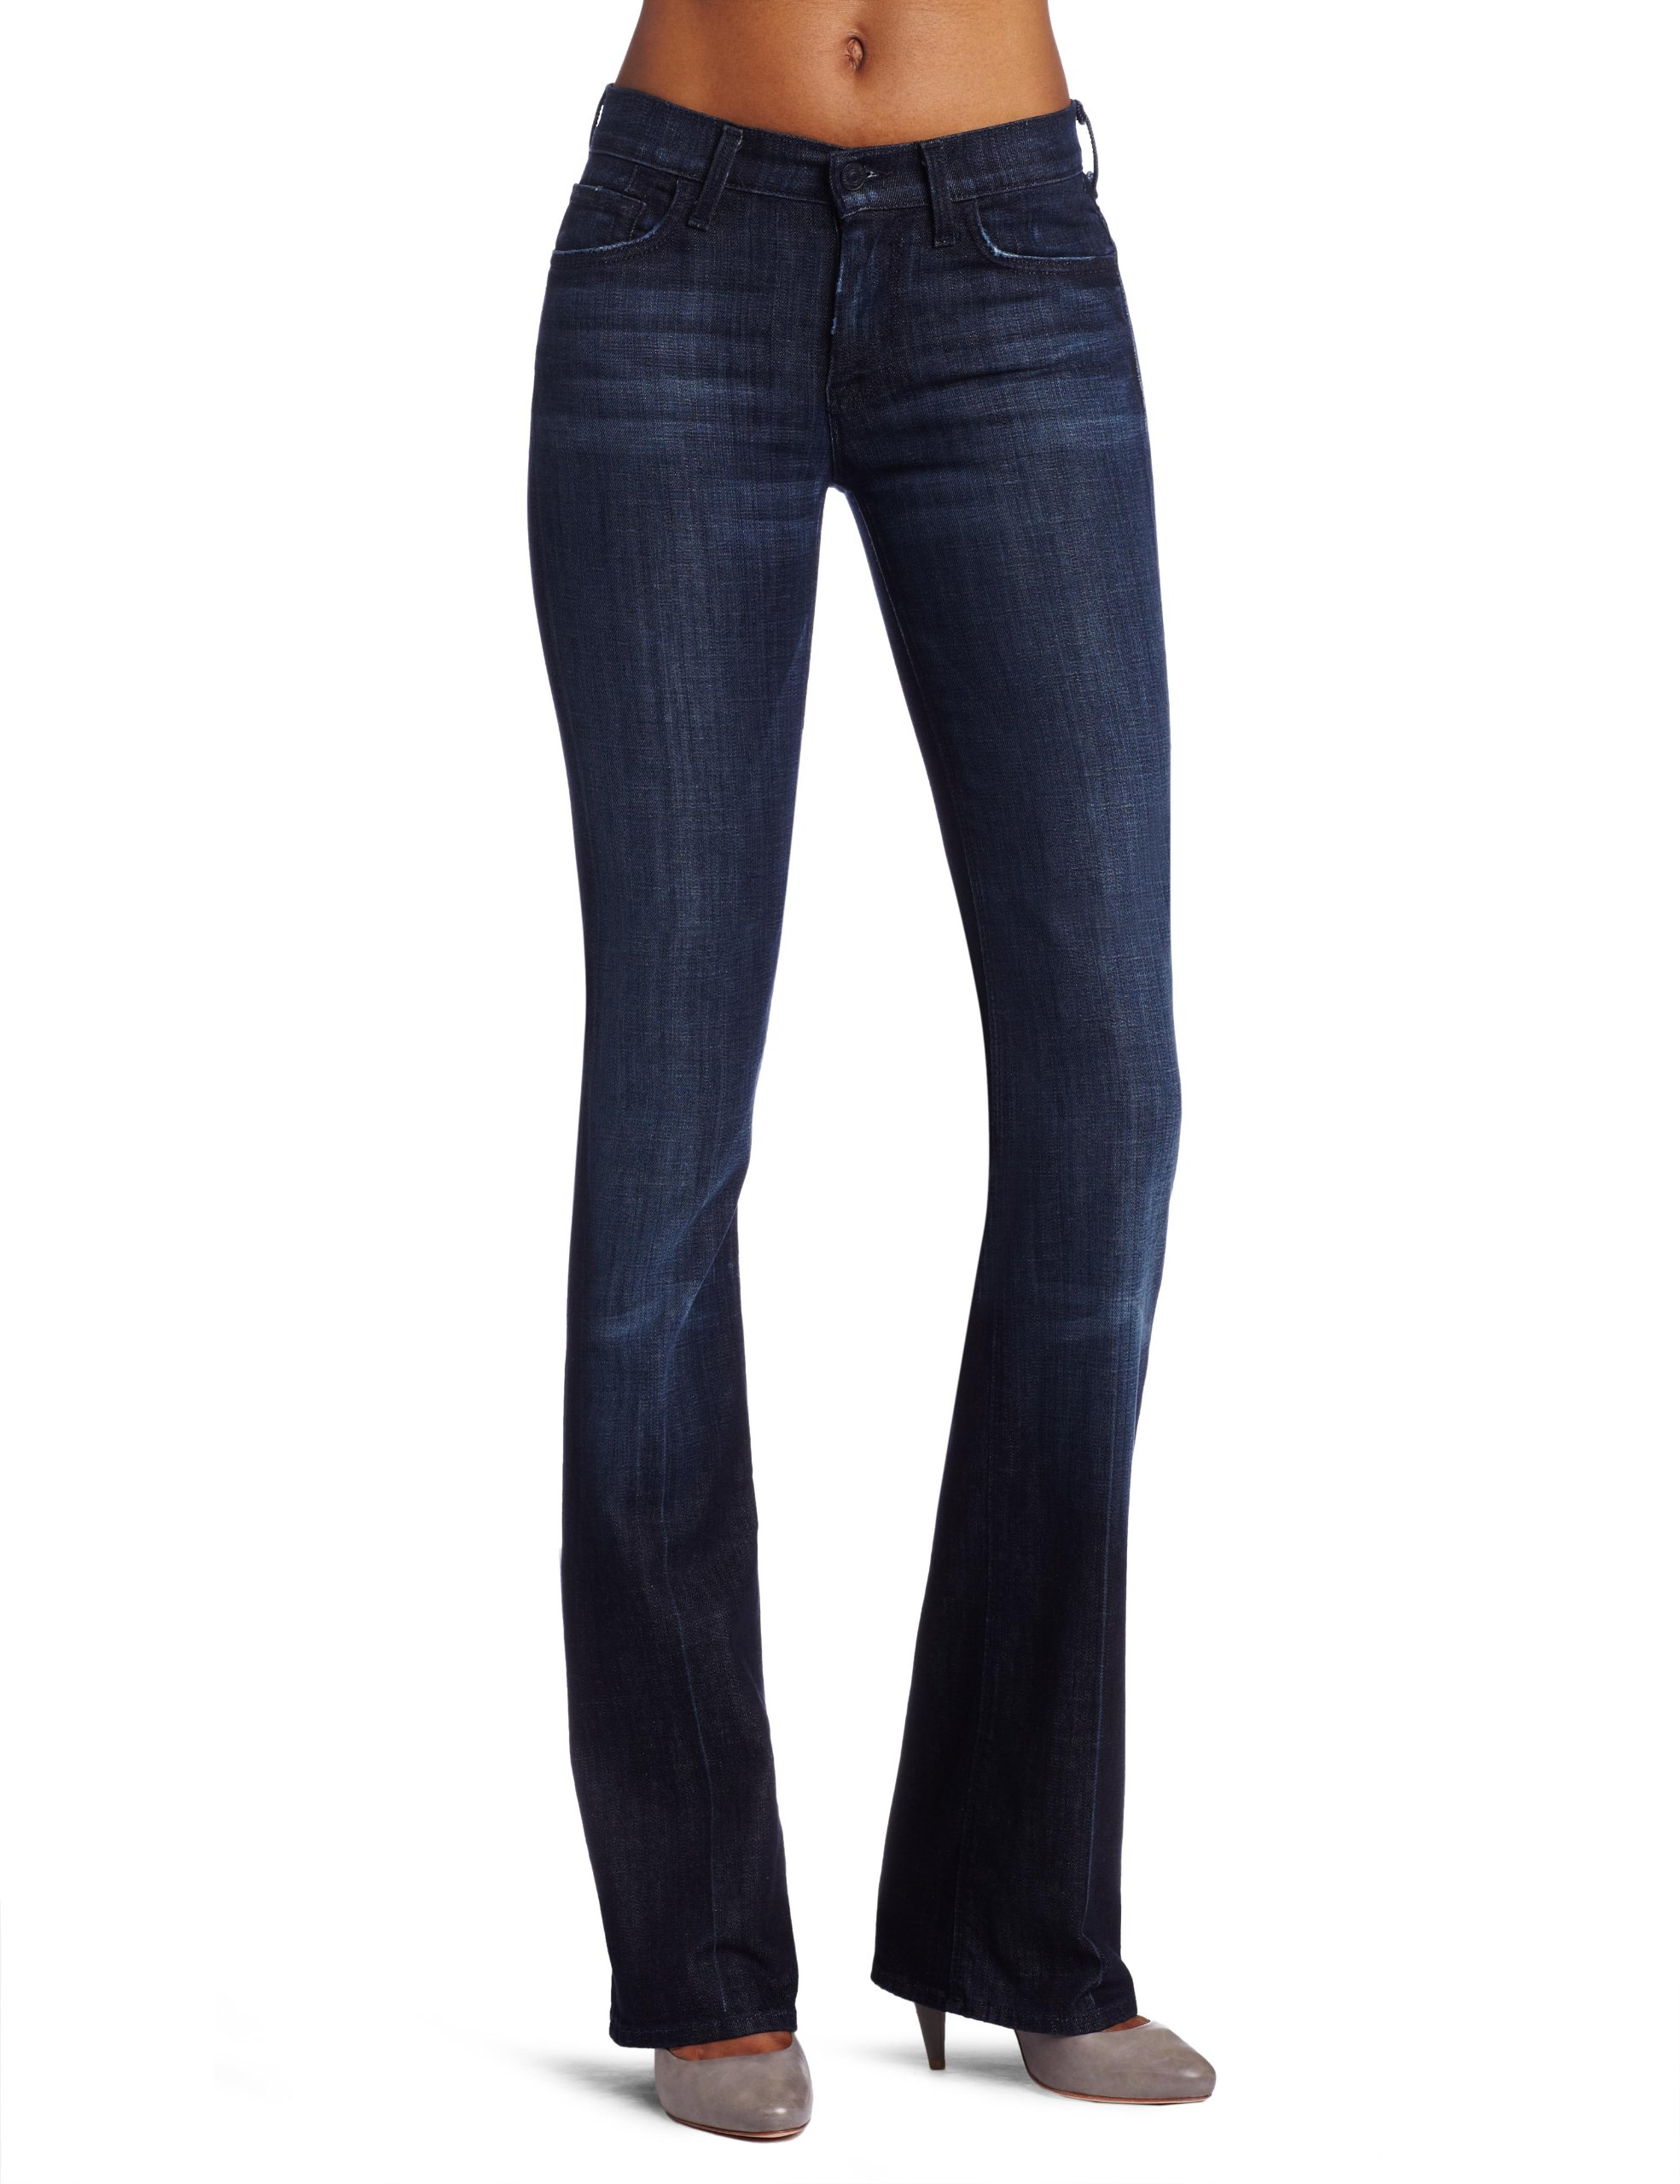 7 For All Mankind Women's Midrise Boot Cut Jean in Los Angeles Dark, Los Angeles Dark, 24